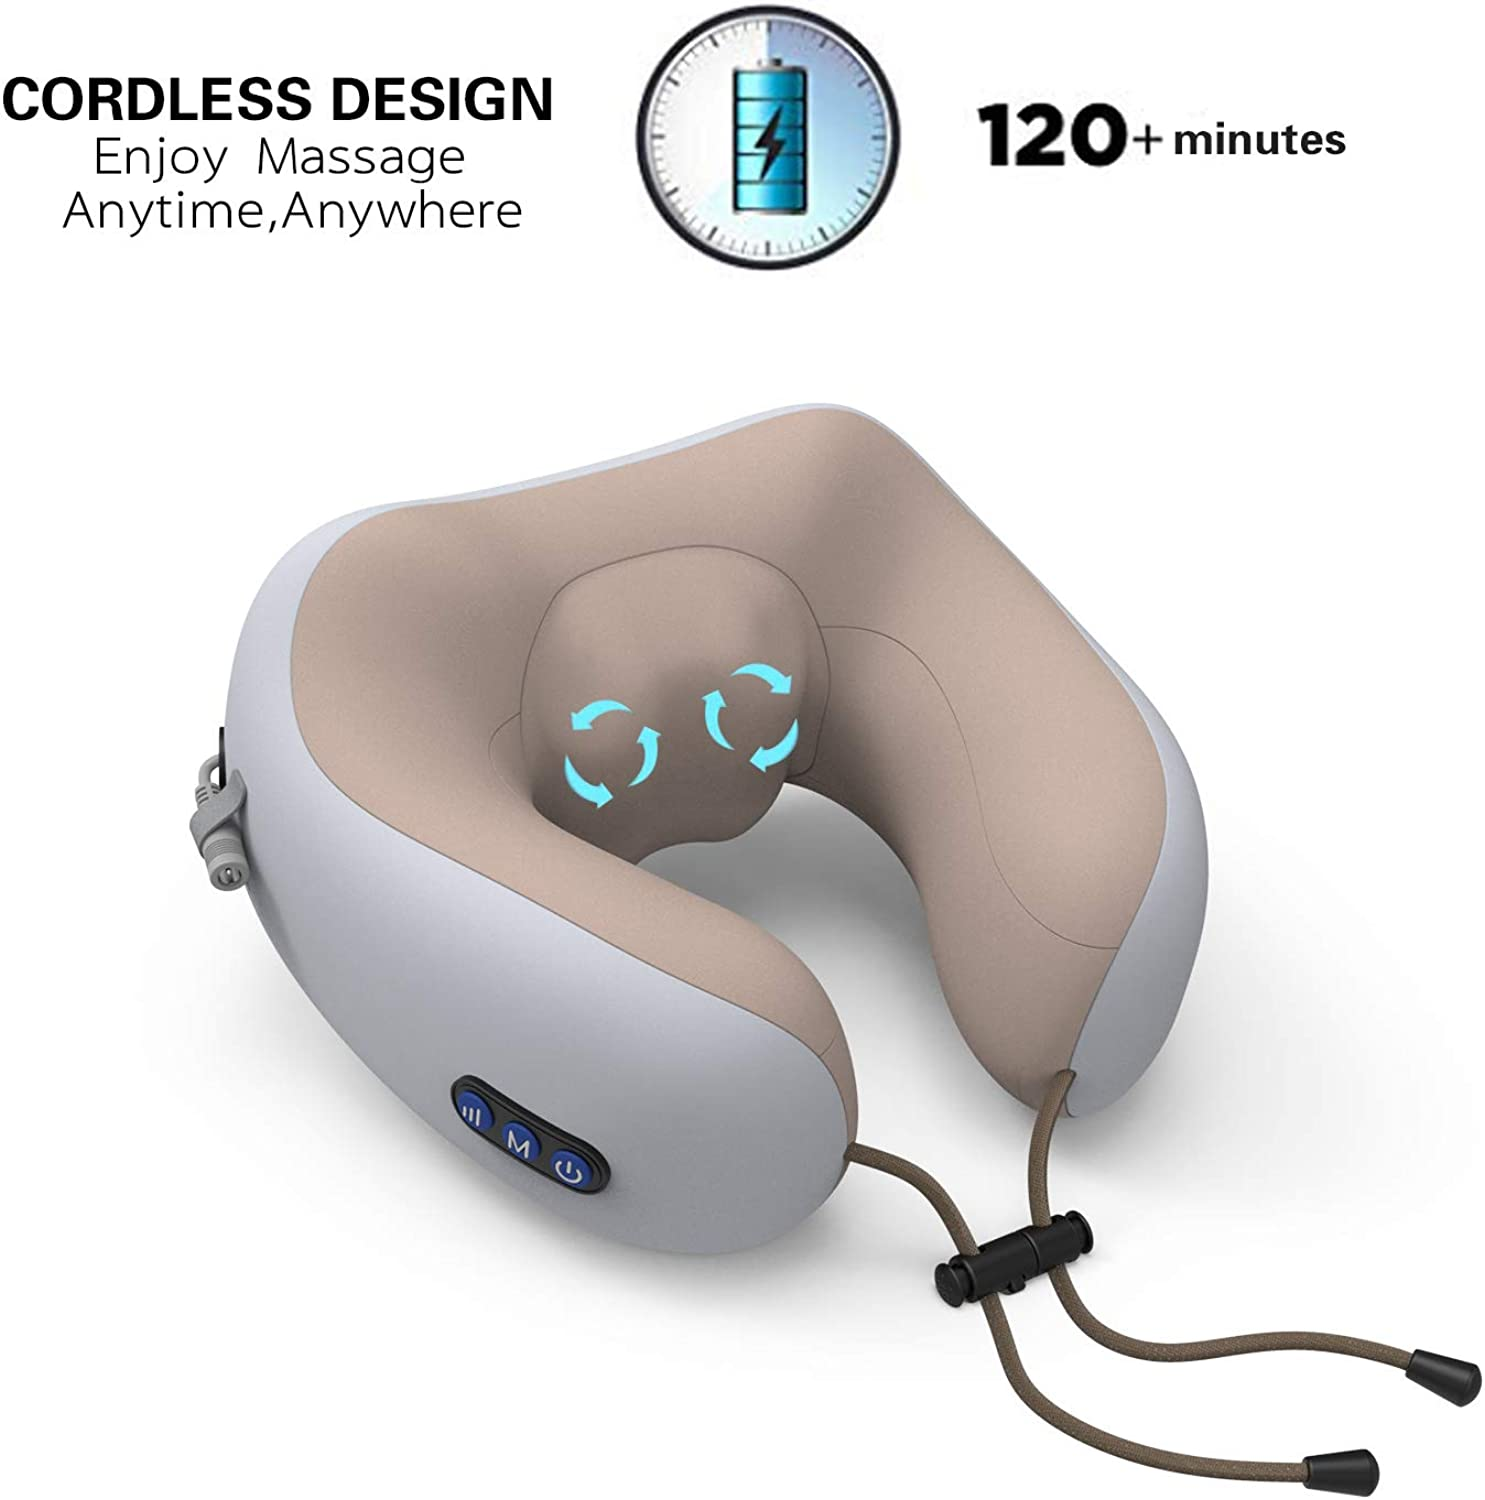 Cordless Neck greenebra Massage Electric Travel Pillow with Heat - Deep Tissue 3D Kneading Pillow, U-Shaped Memory Foam Electric Neck Massage Relieve Muscle Pain - Office, Home,Airplane& Car